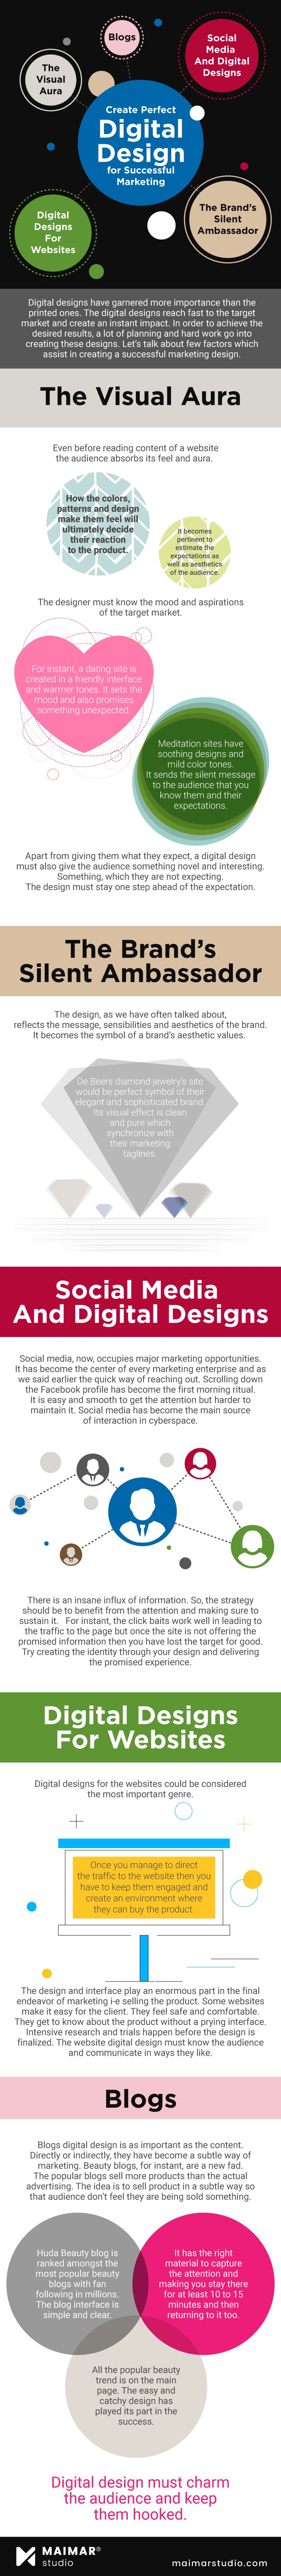 #DigitalDesign #Blog #SocialMedia #SuccessfulMarketing